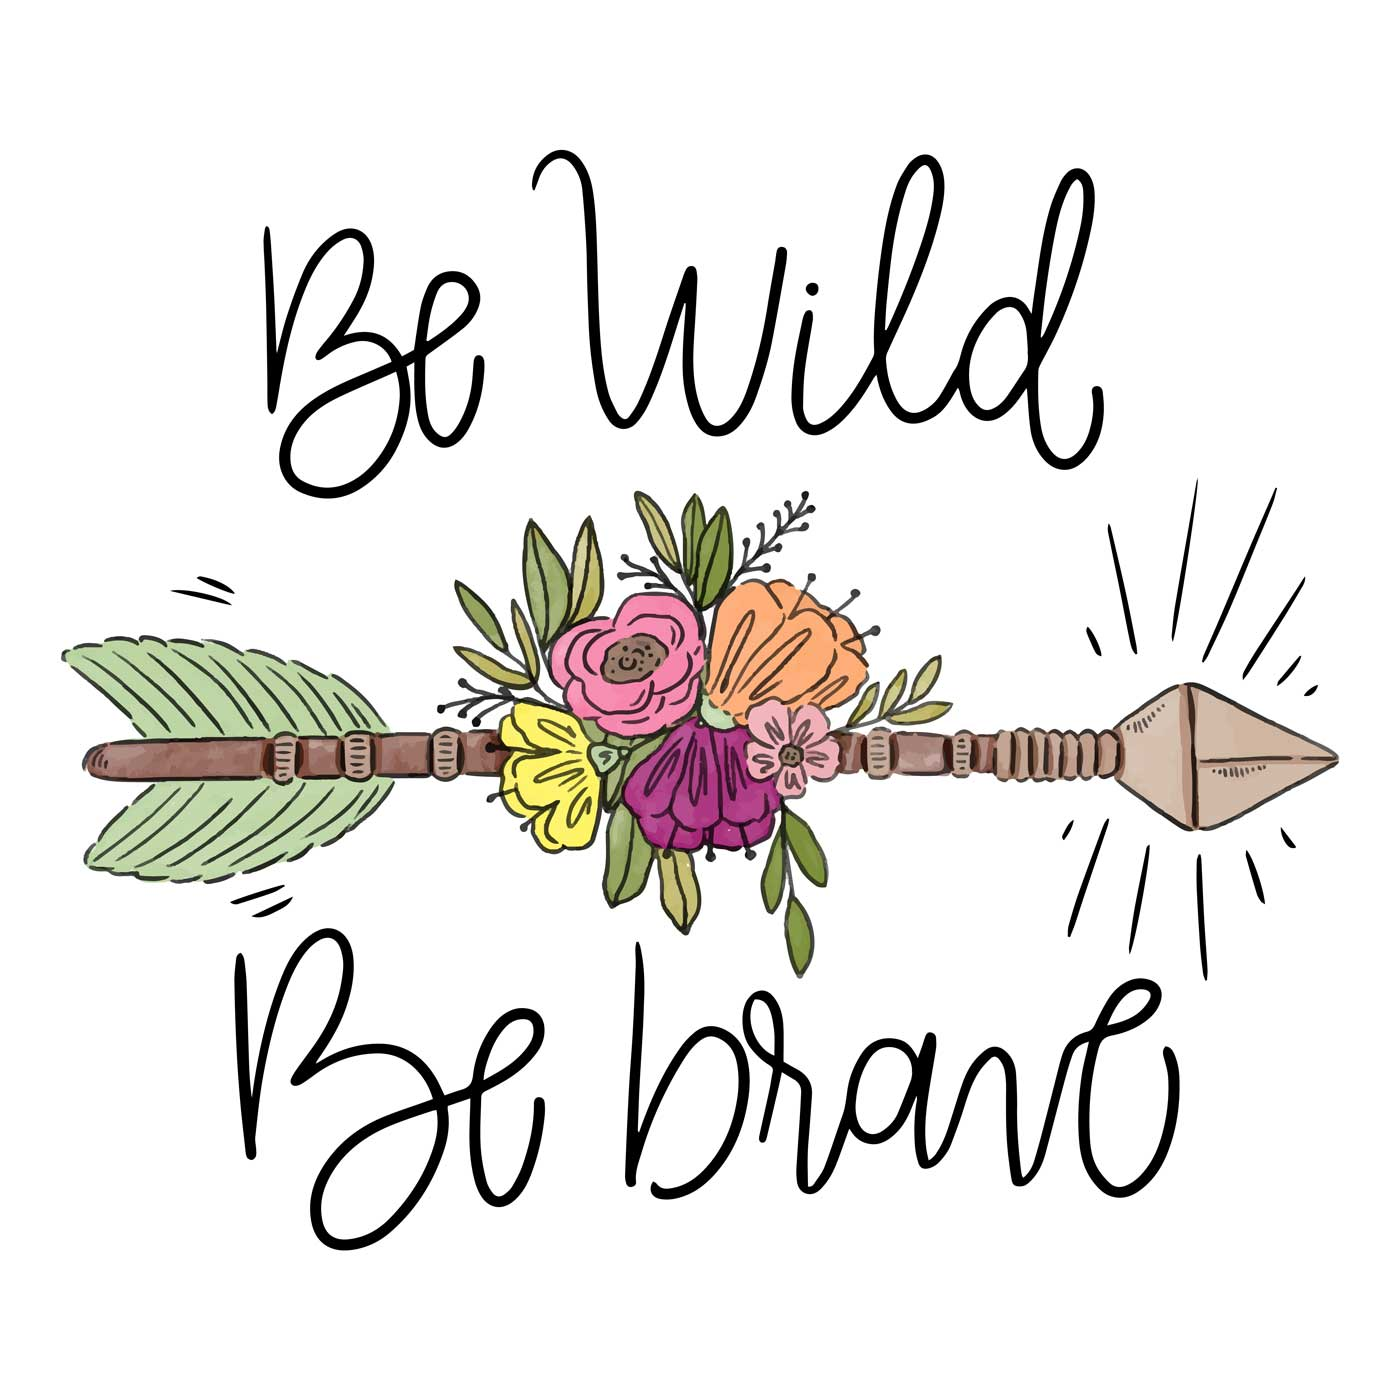 Boho Arrow With Leaves, Flowers And Lettering - Download ...